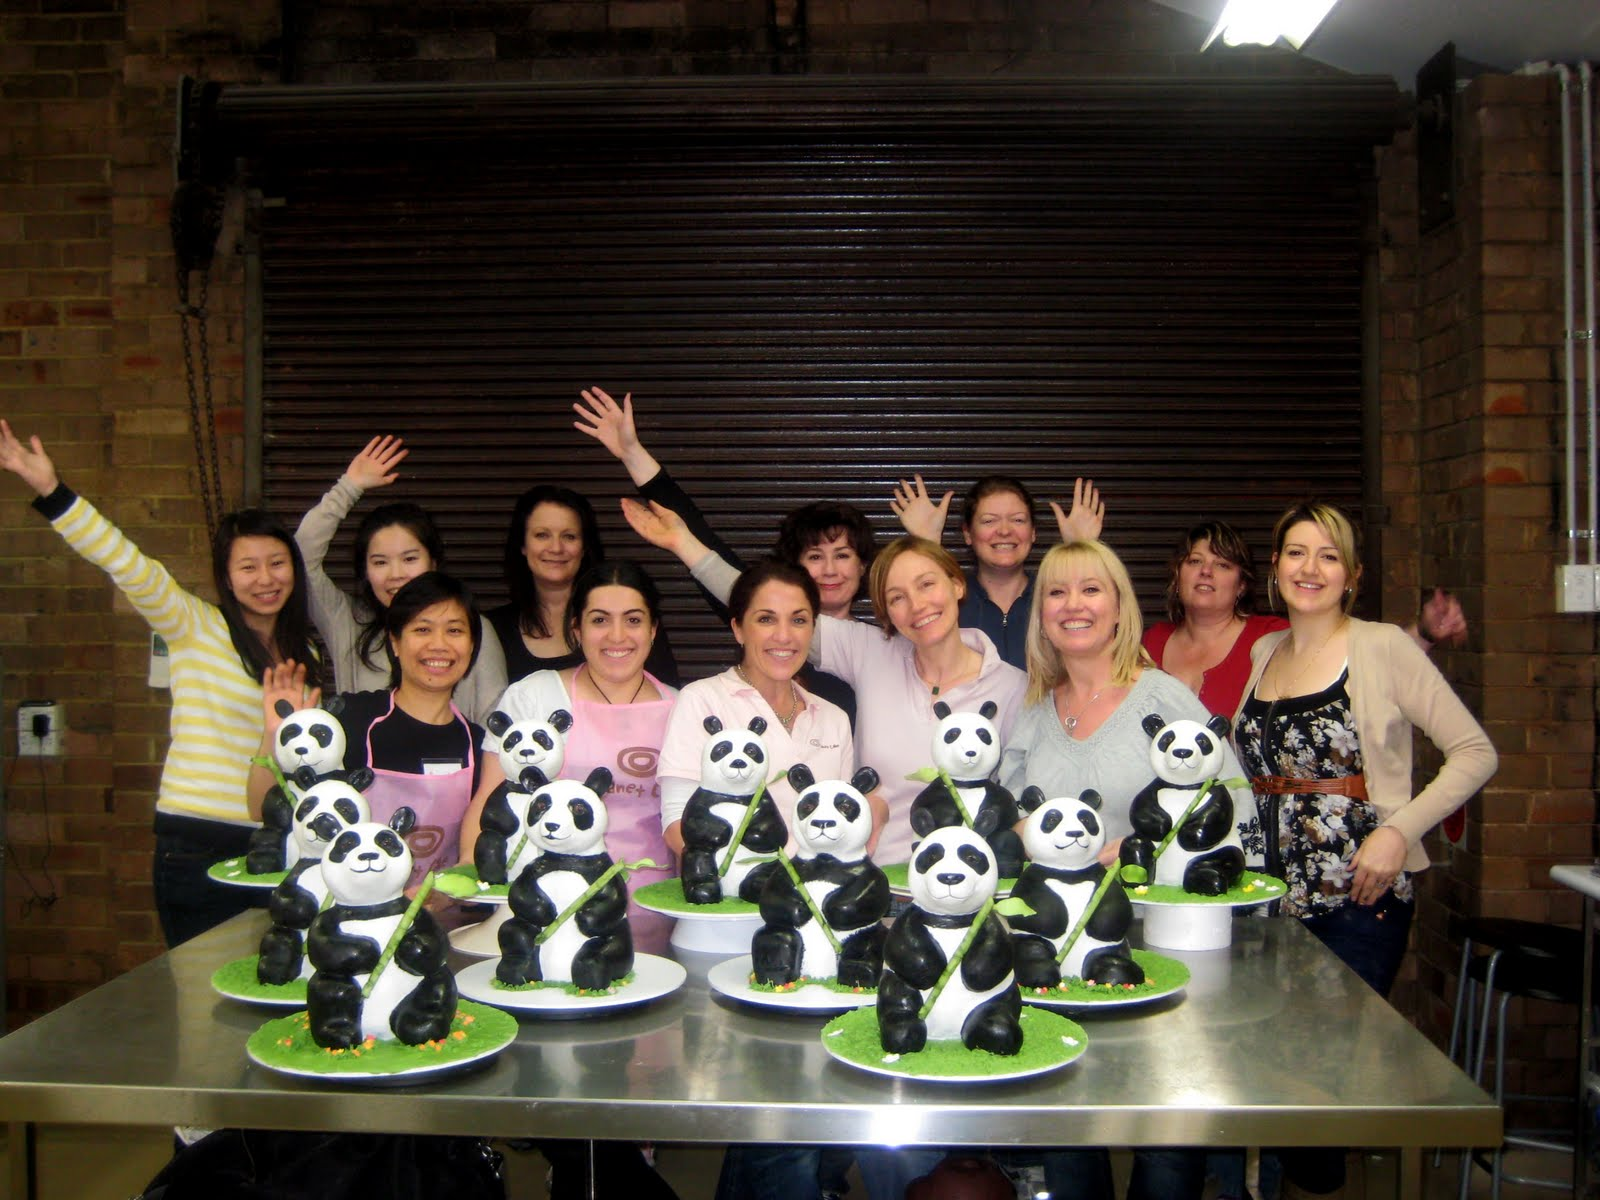 Cake Decorating Classes Central West Nsw : PLANET CAKE UPDATE: Planet Cake do Australia